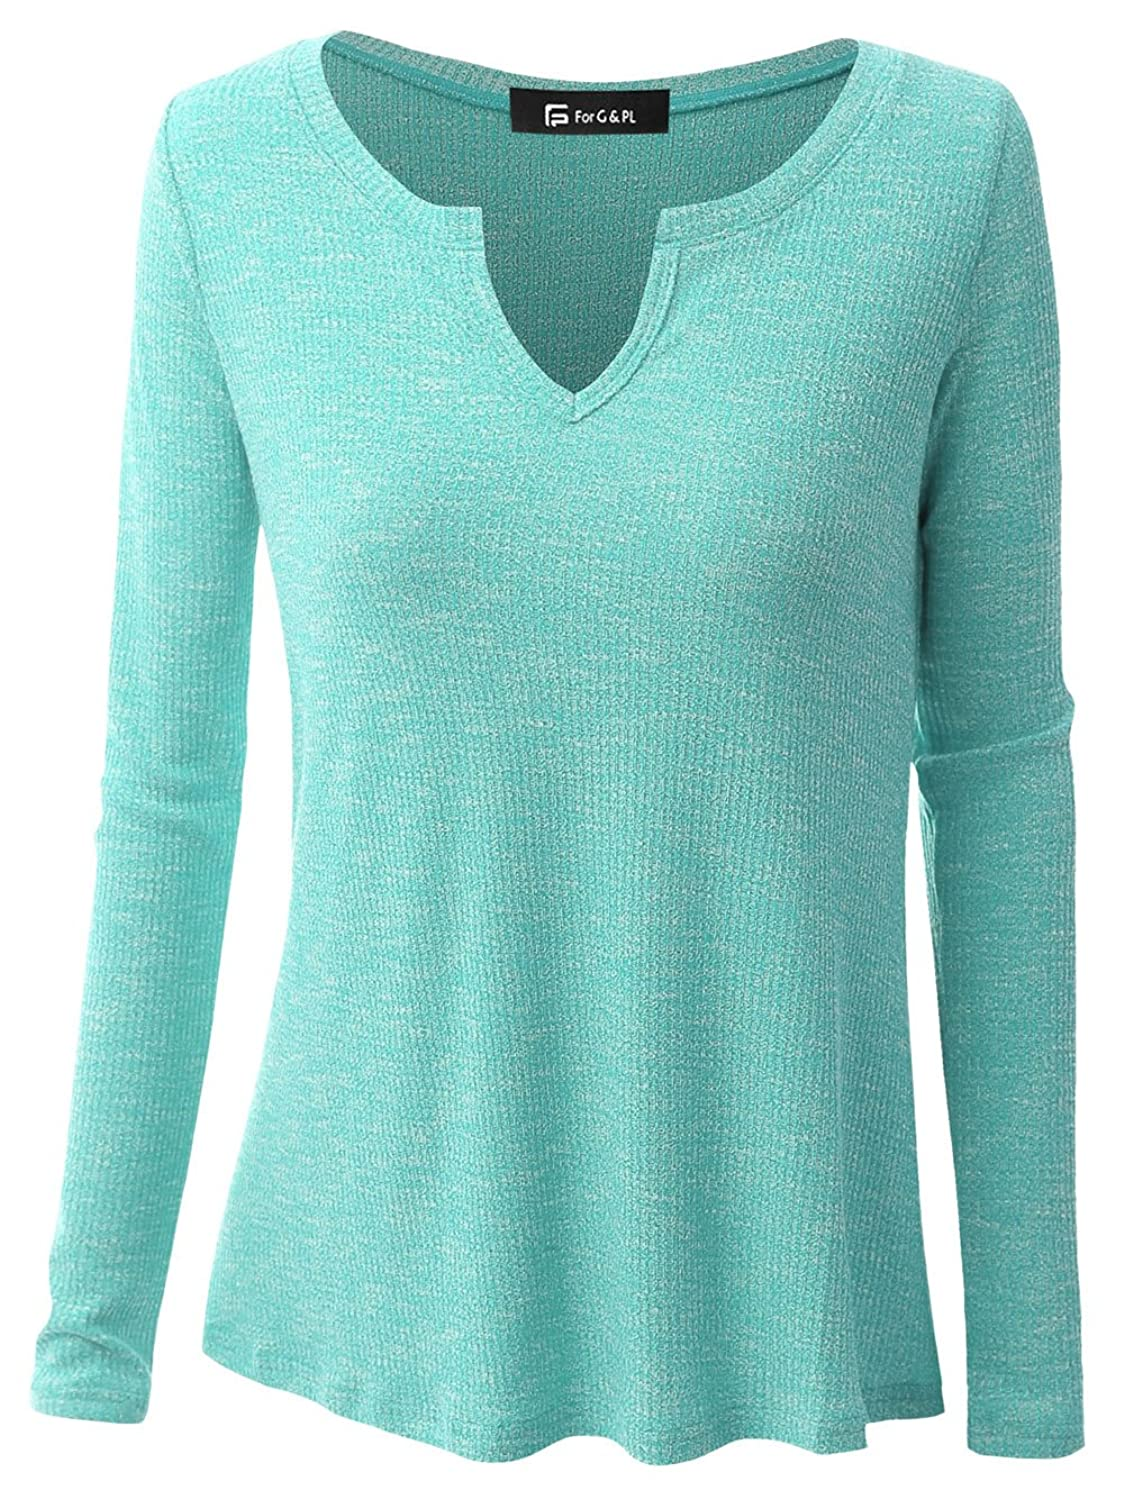 For G & PL Women's Casual V-Neck Knitted Sweatshirt Tops